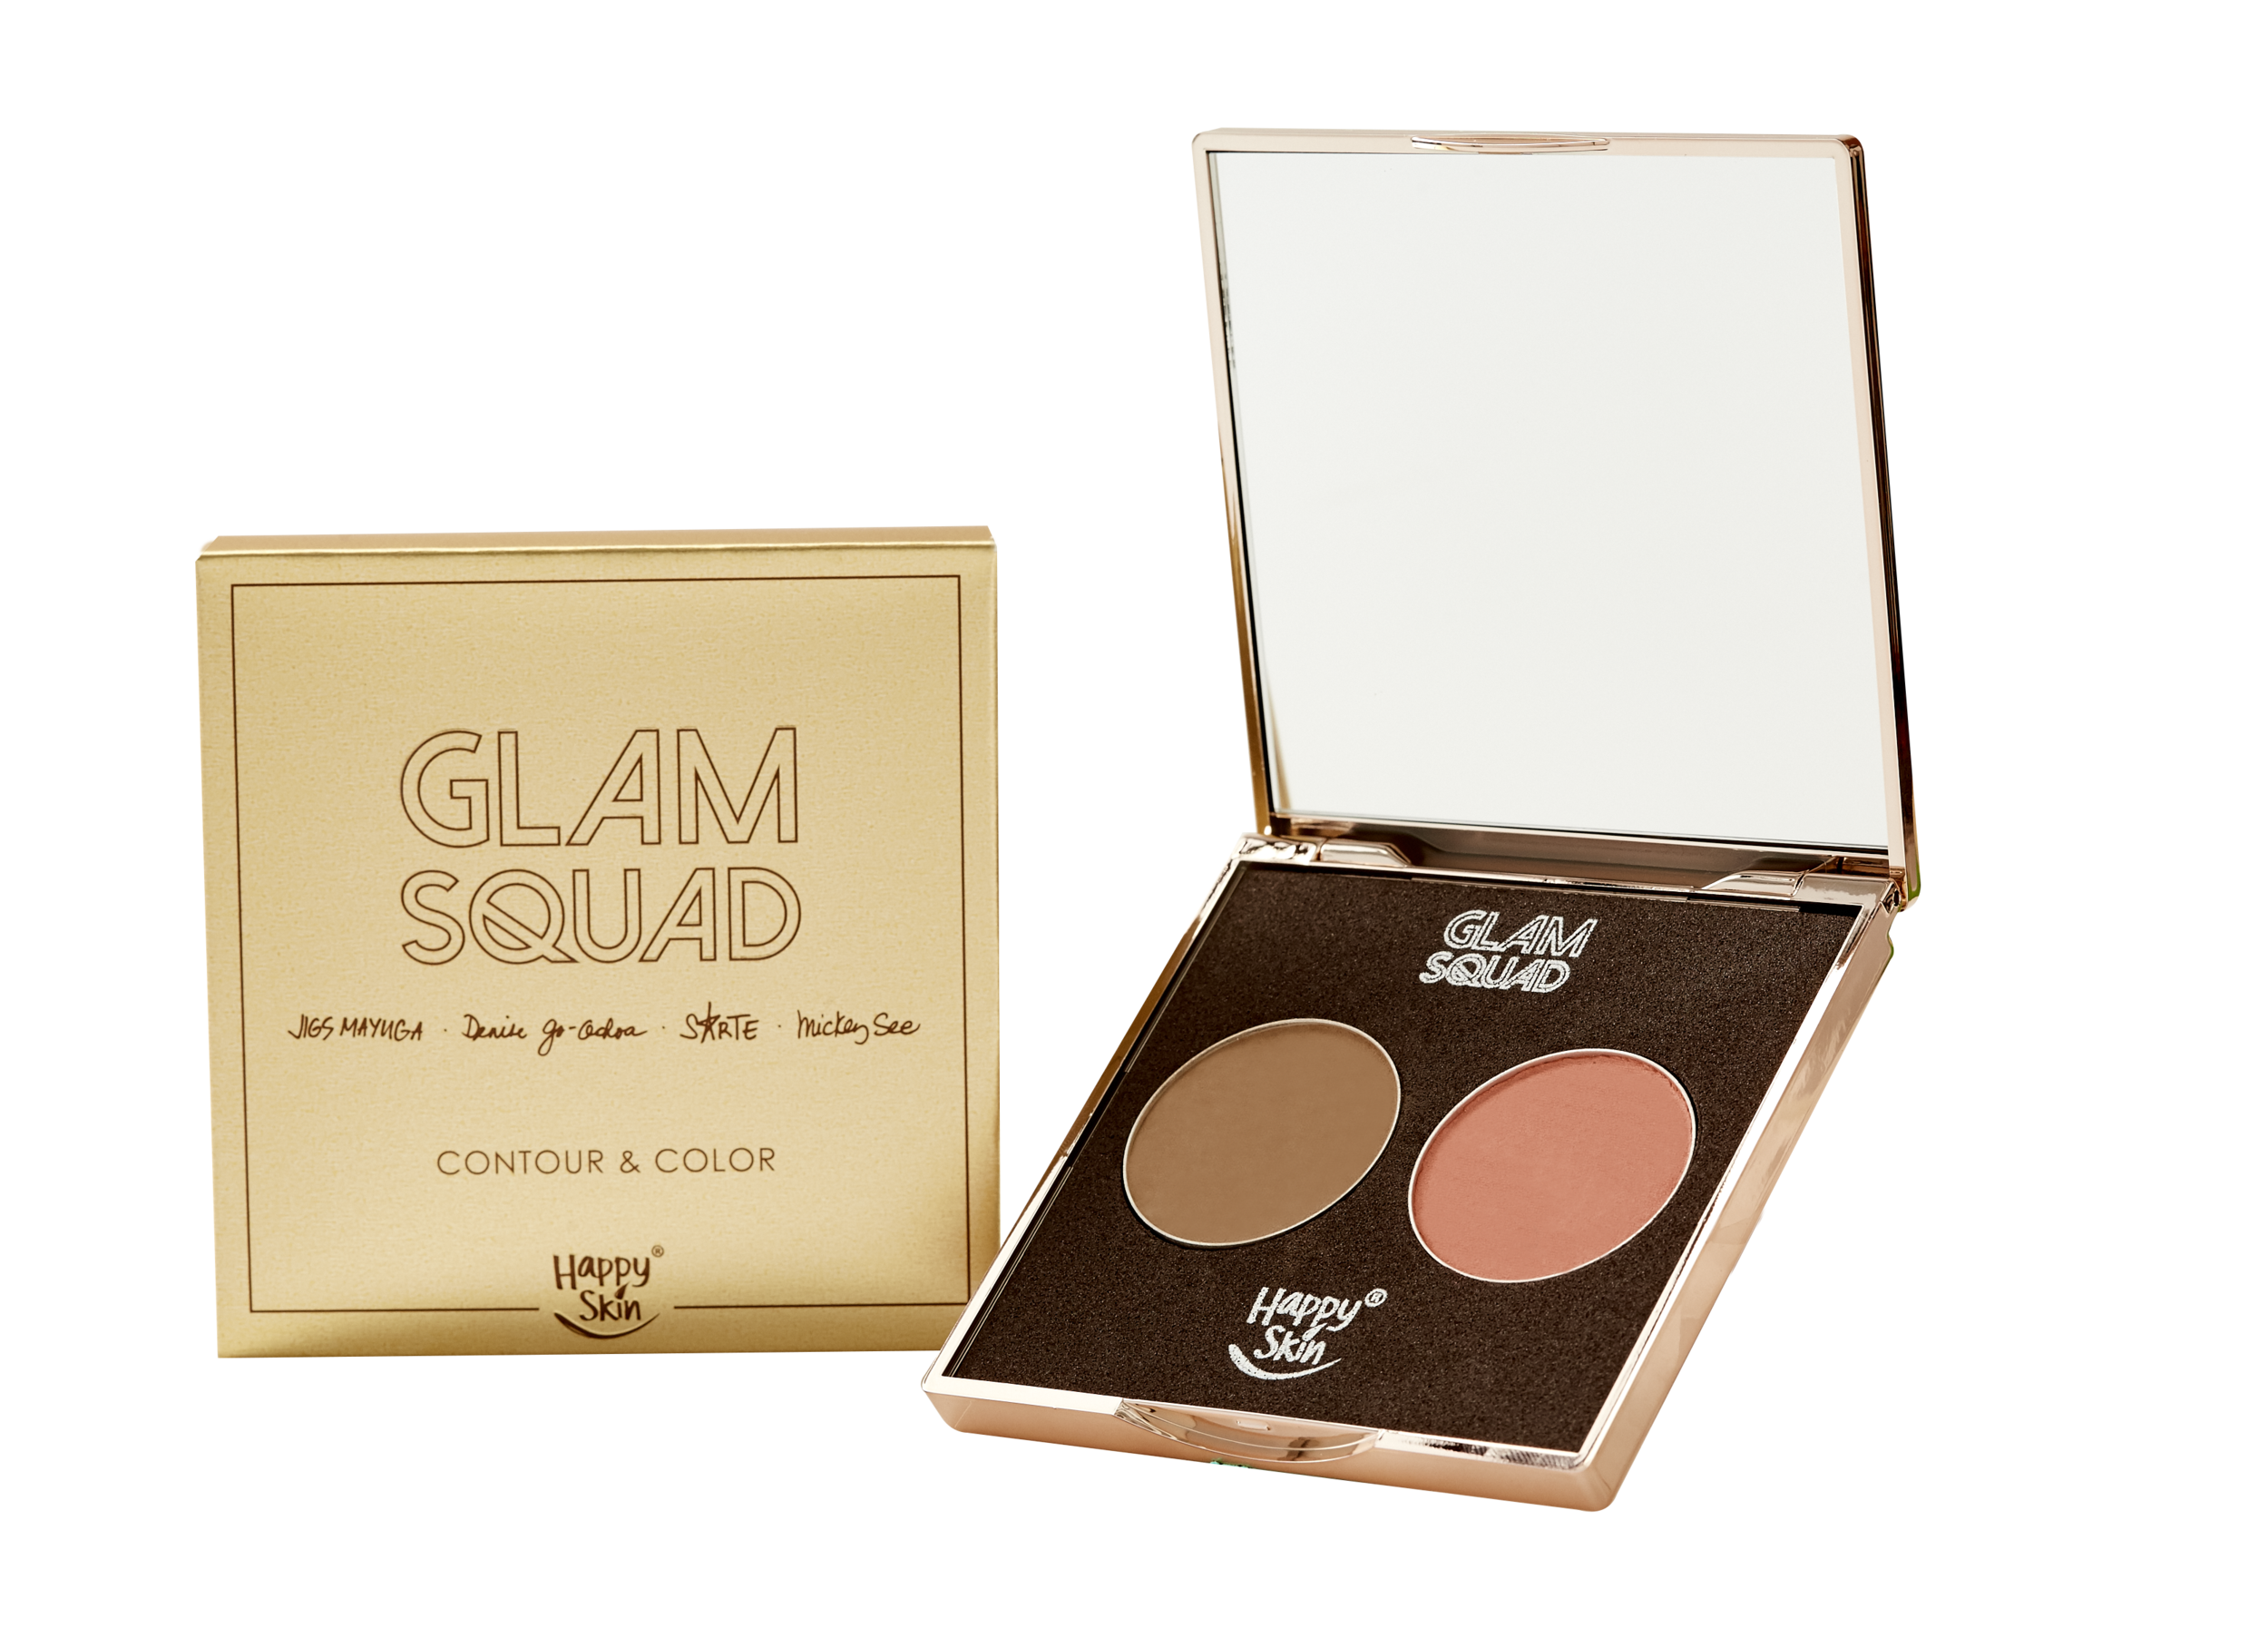 Happy Skin Glam Squad Contour and Color, PHP 1,399